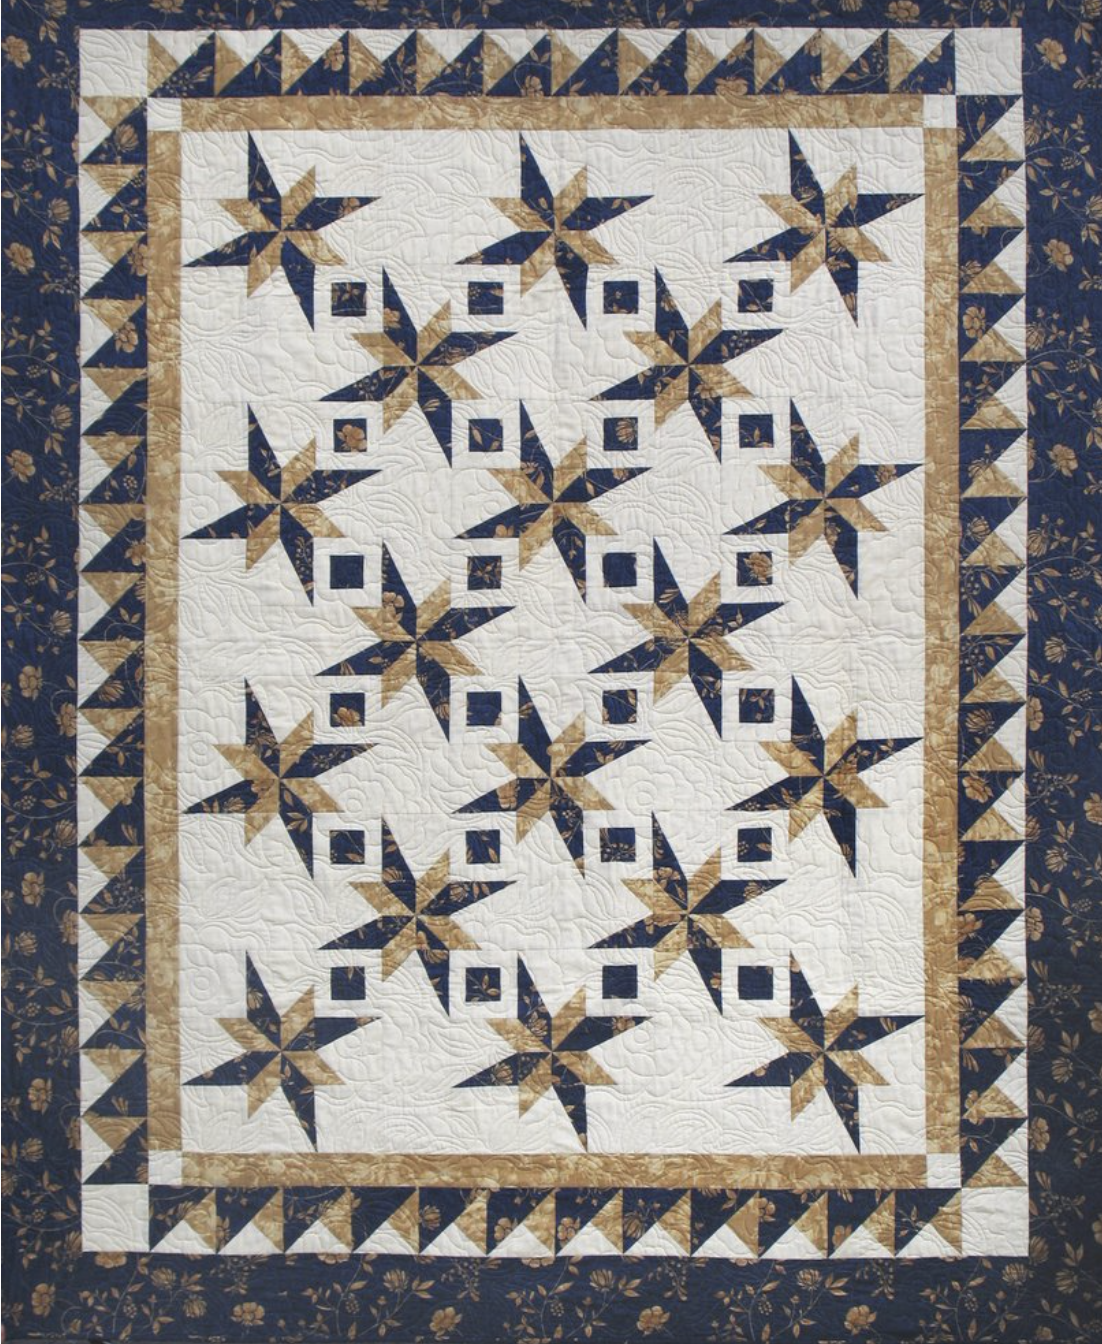 New Year's Star Pattern